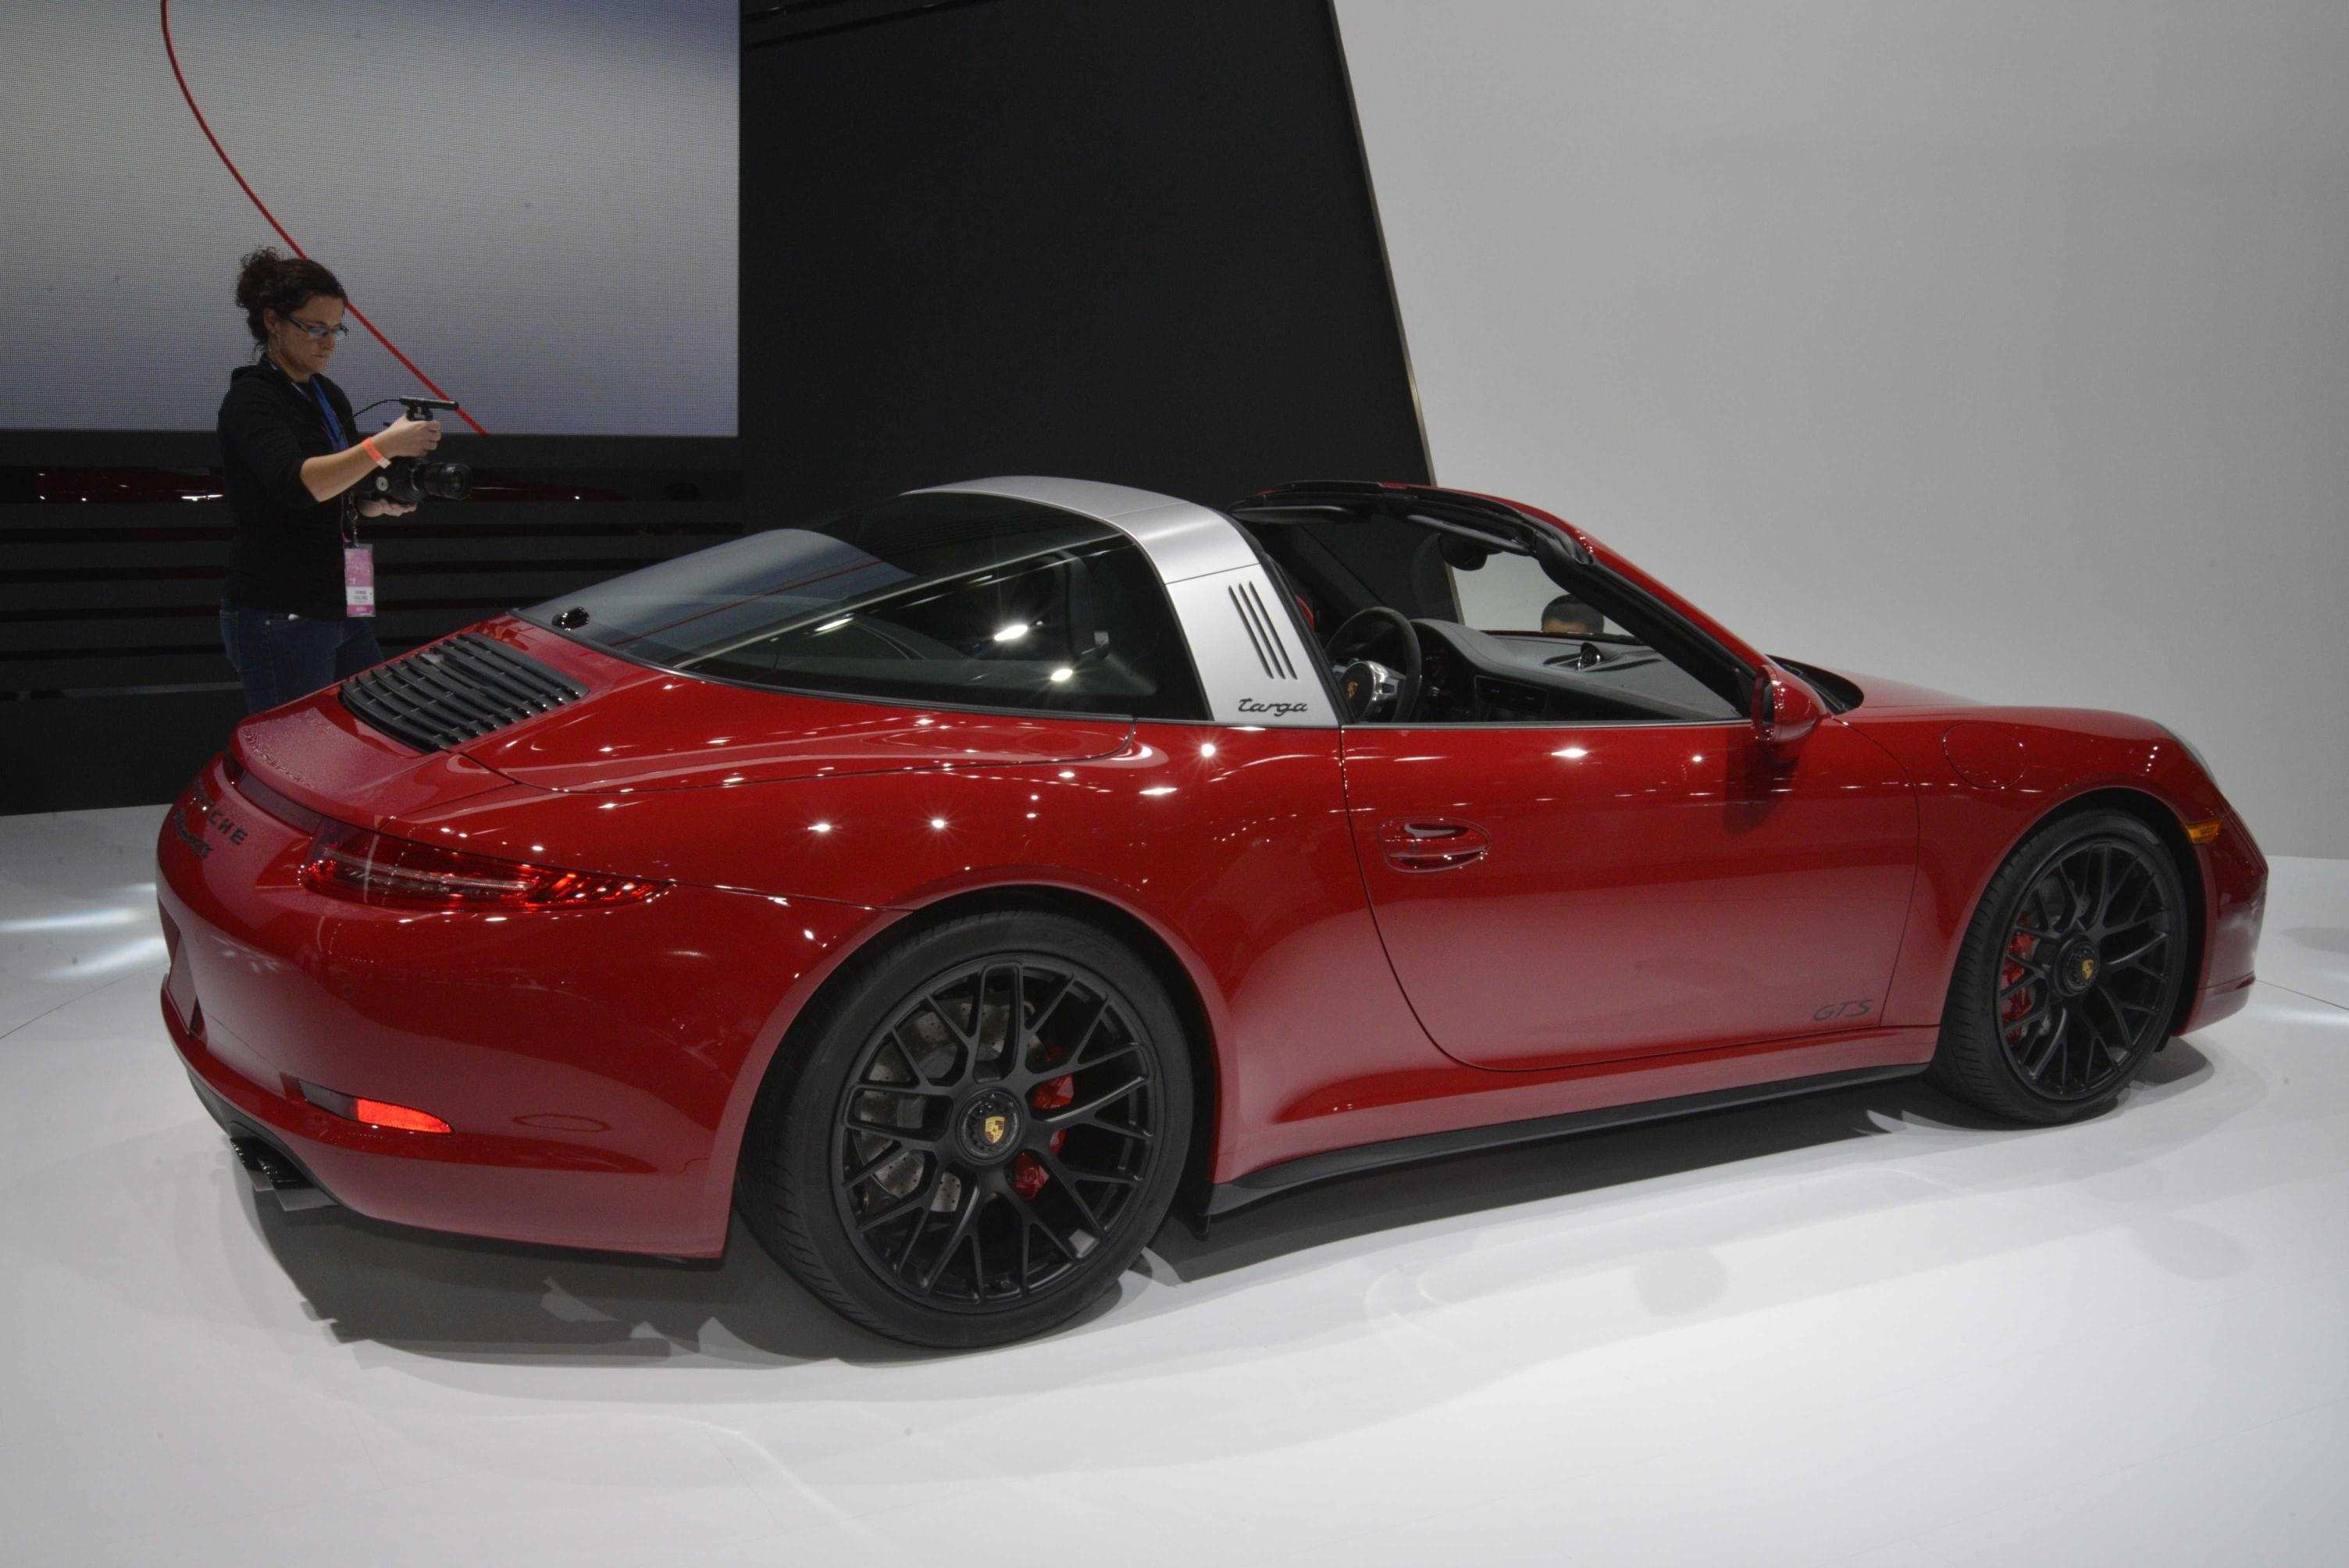 83 Great 2019 Porsche Targa 4 Gts Review for 2019 Porsche Targa 4 Gts